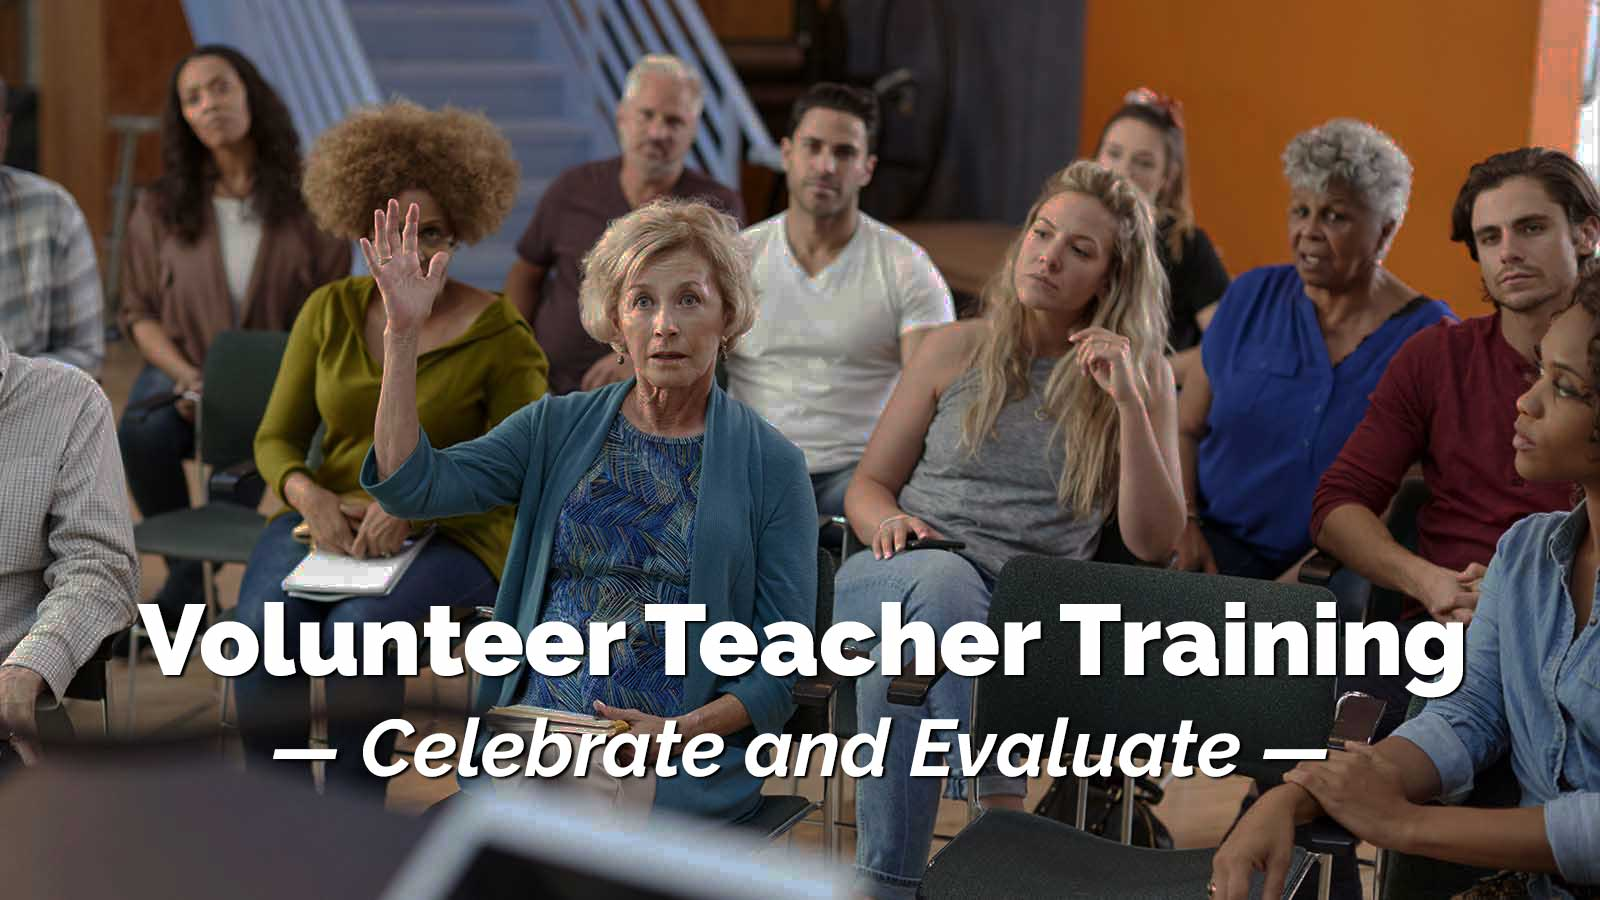 Woman raising hand in class. Volunteer Teacher Training. Celebrate and Evaluate.